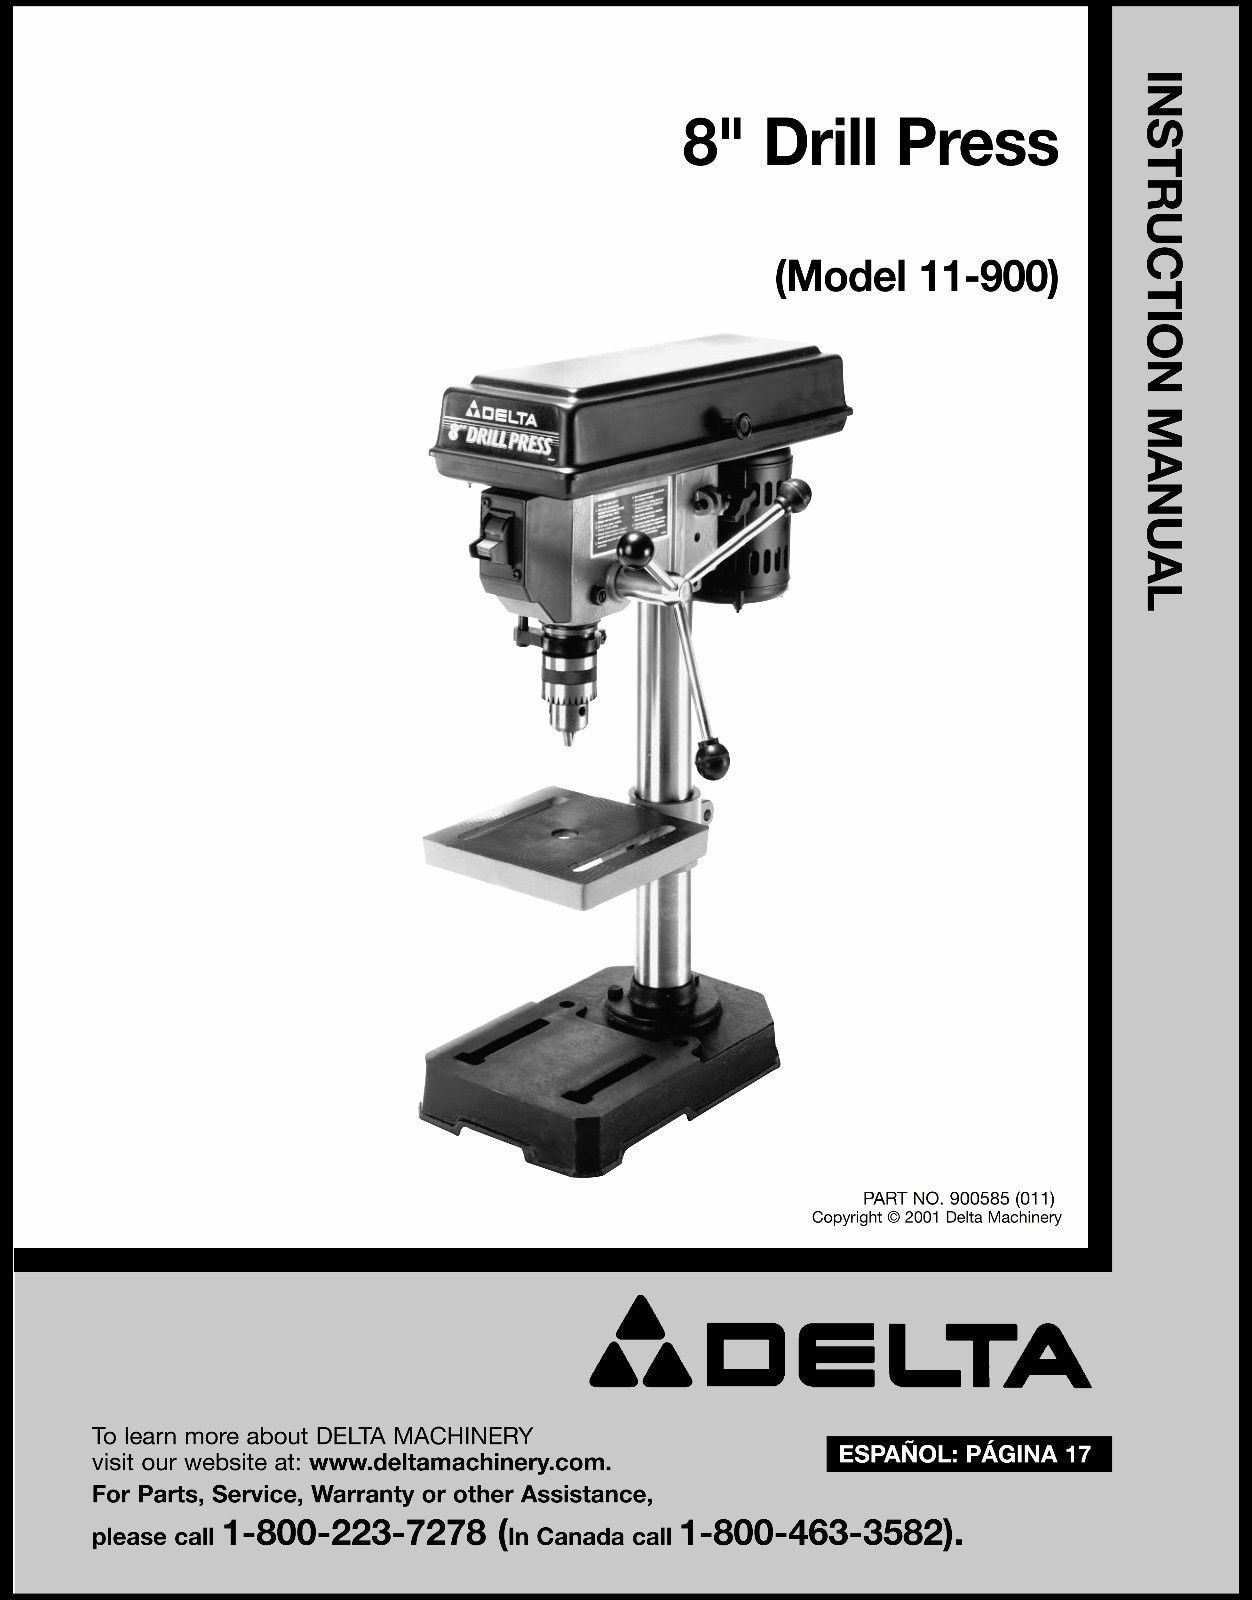 Delta Machinery Parts Canada